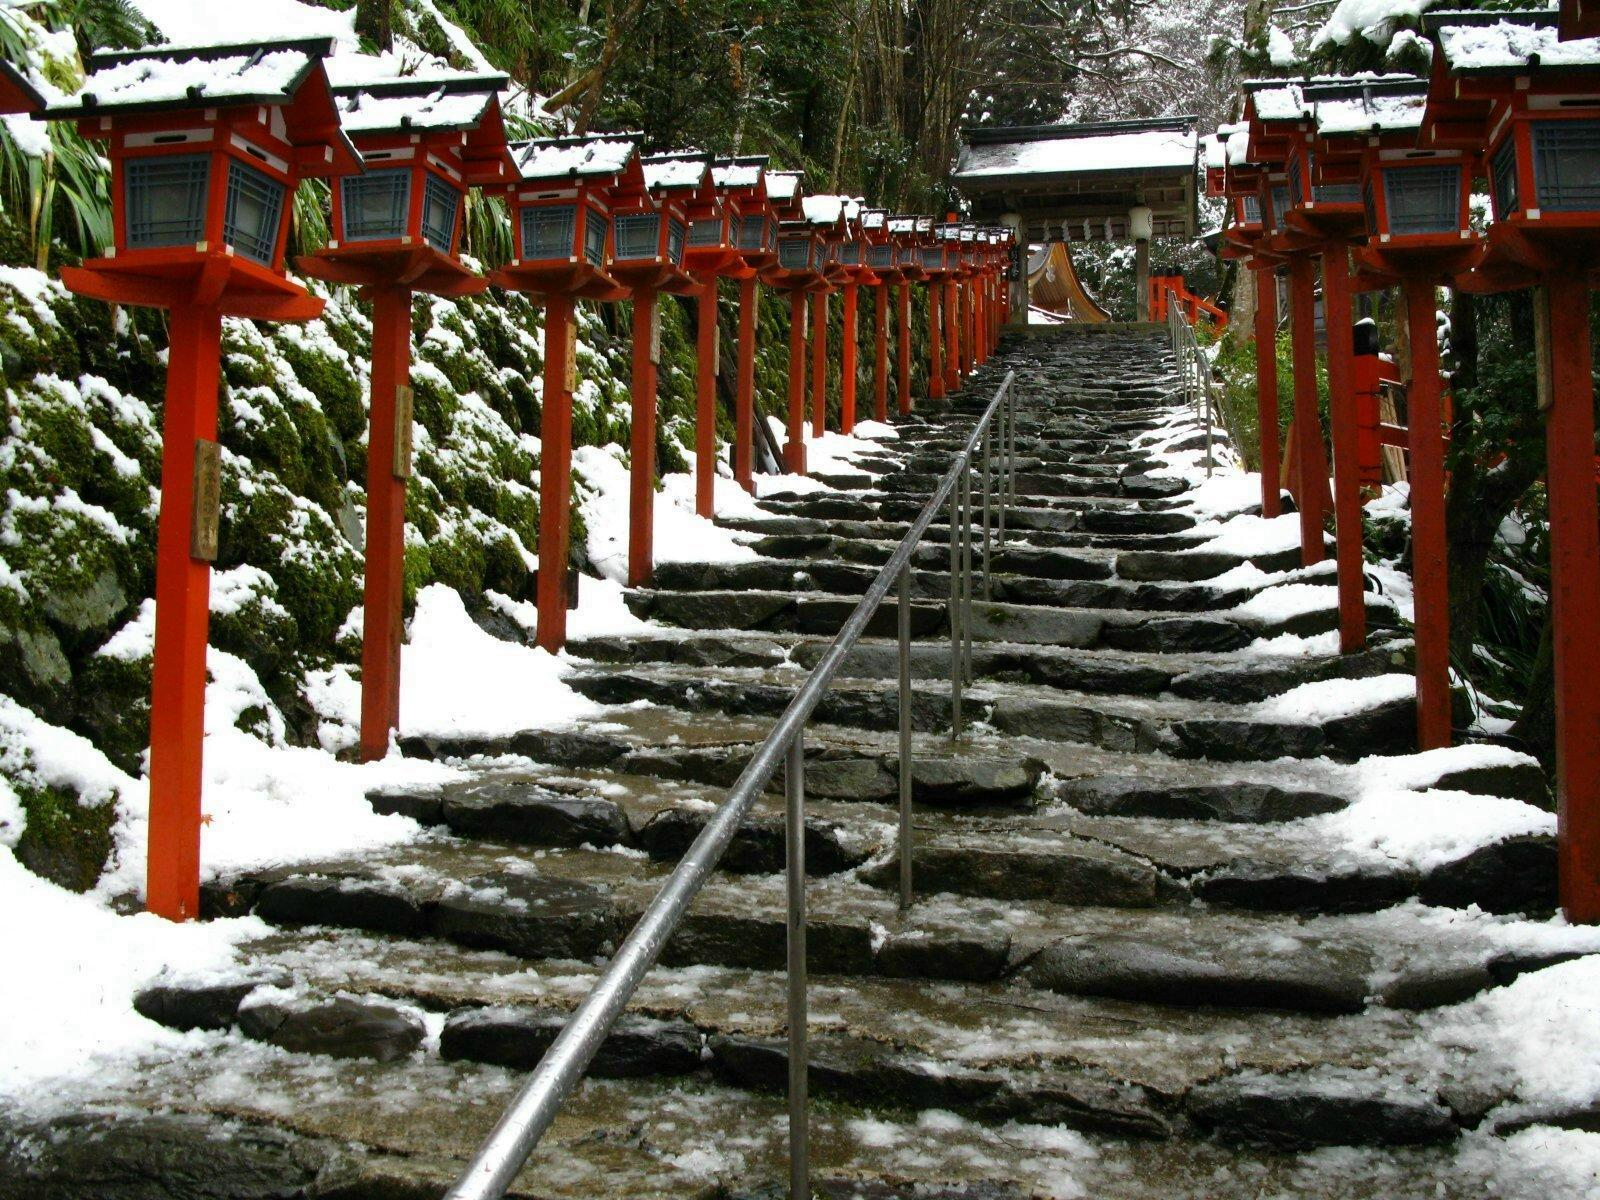 Japan Wallpapers and Image: Winter Japan Scenery Wallpapers